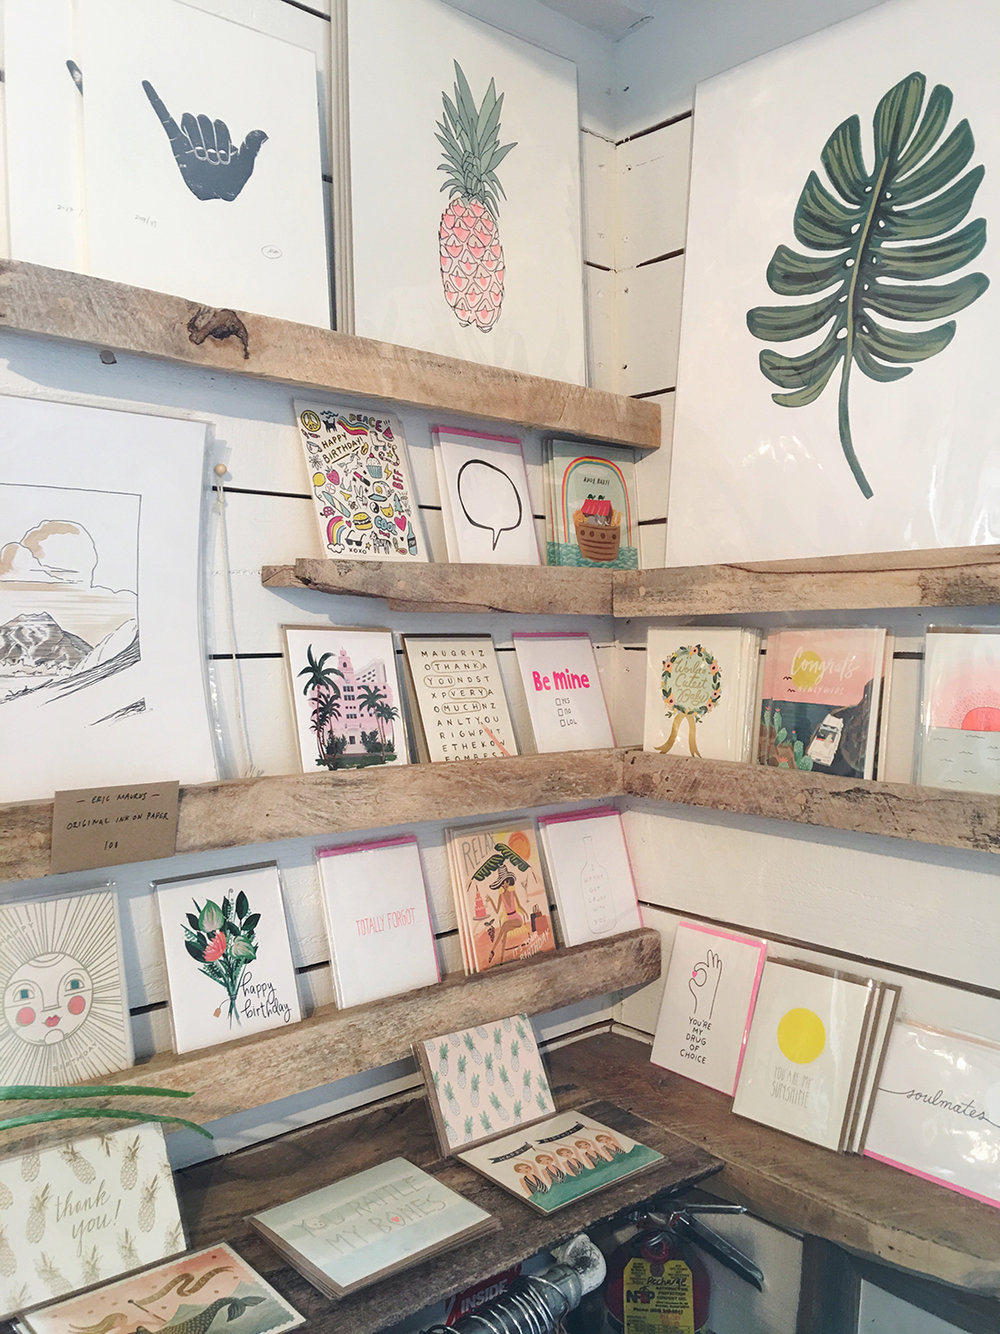 Love this little corner of custom stationary by local artists at Olive & Oliver at The Surfjack Hotel. More on our weekend in Waikiki on beautybyjessika.com.